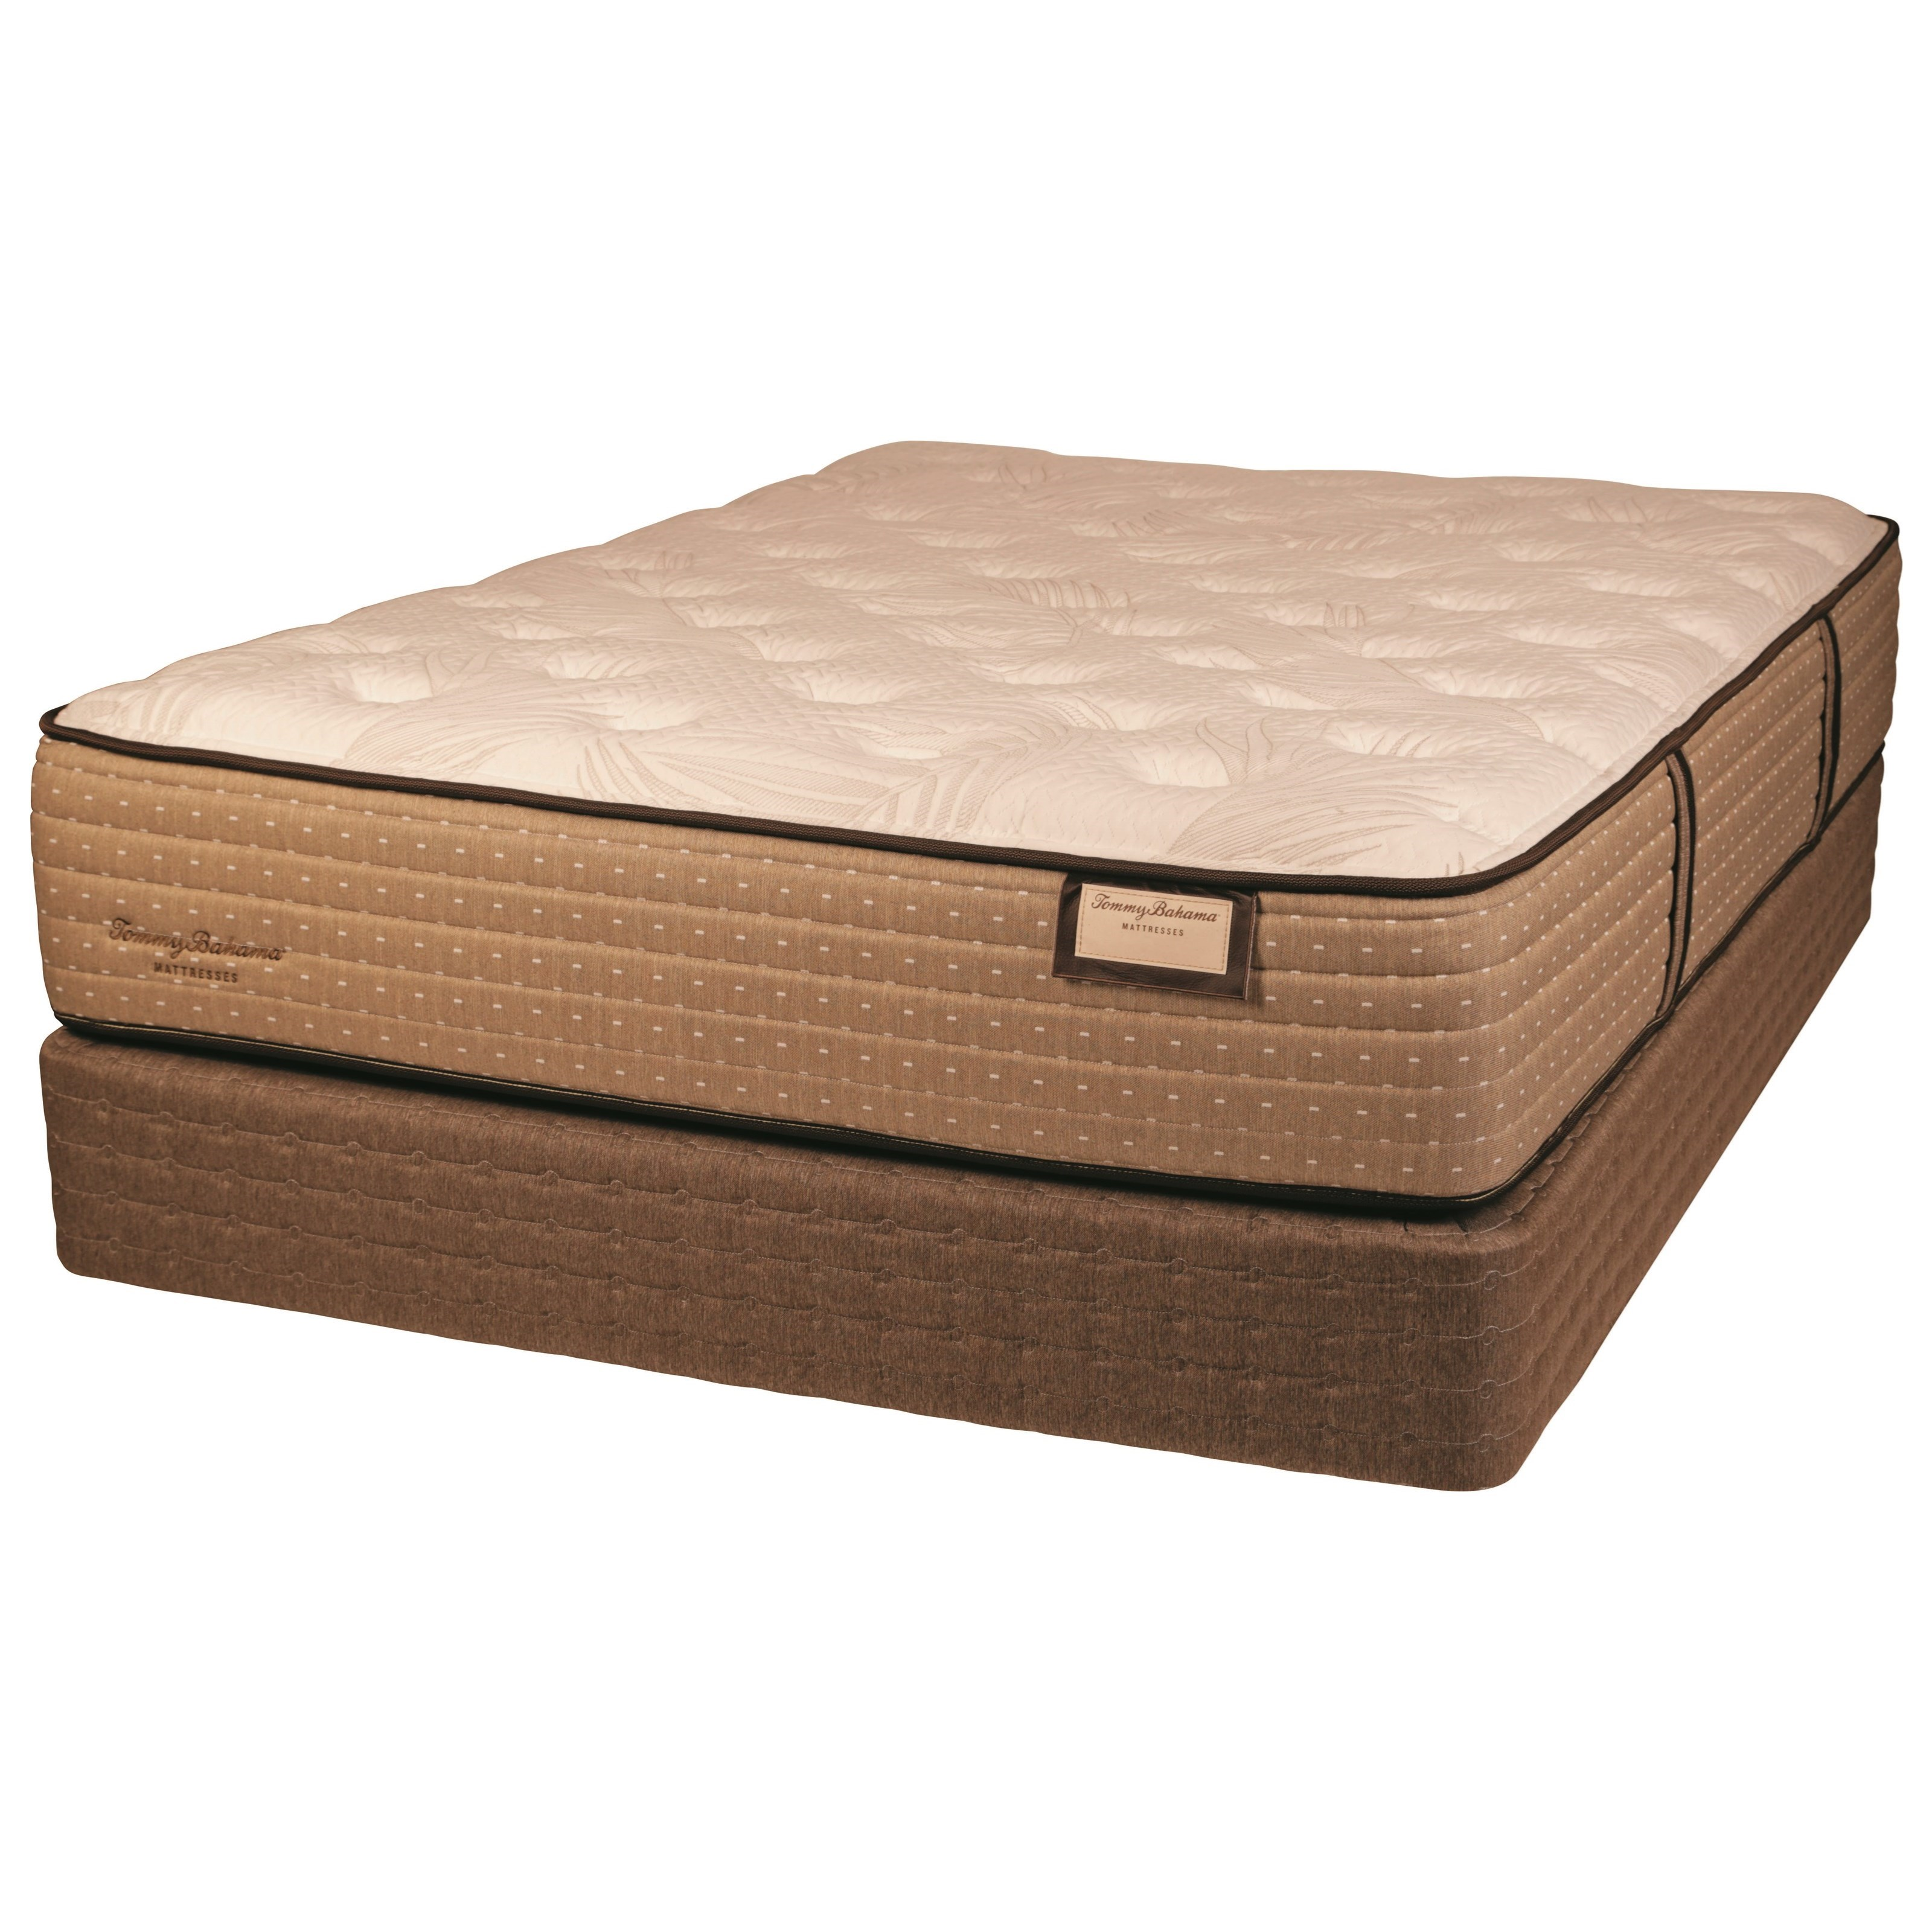 Tommy Bahama Shake the Sand Plush 6036 King Plush Luxry Low Profile Set by Tommy Bahama Mattress at Baer's Furniture